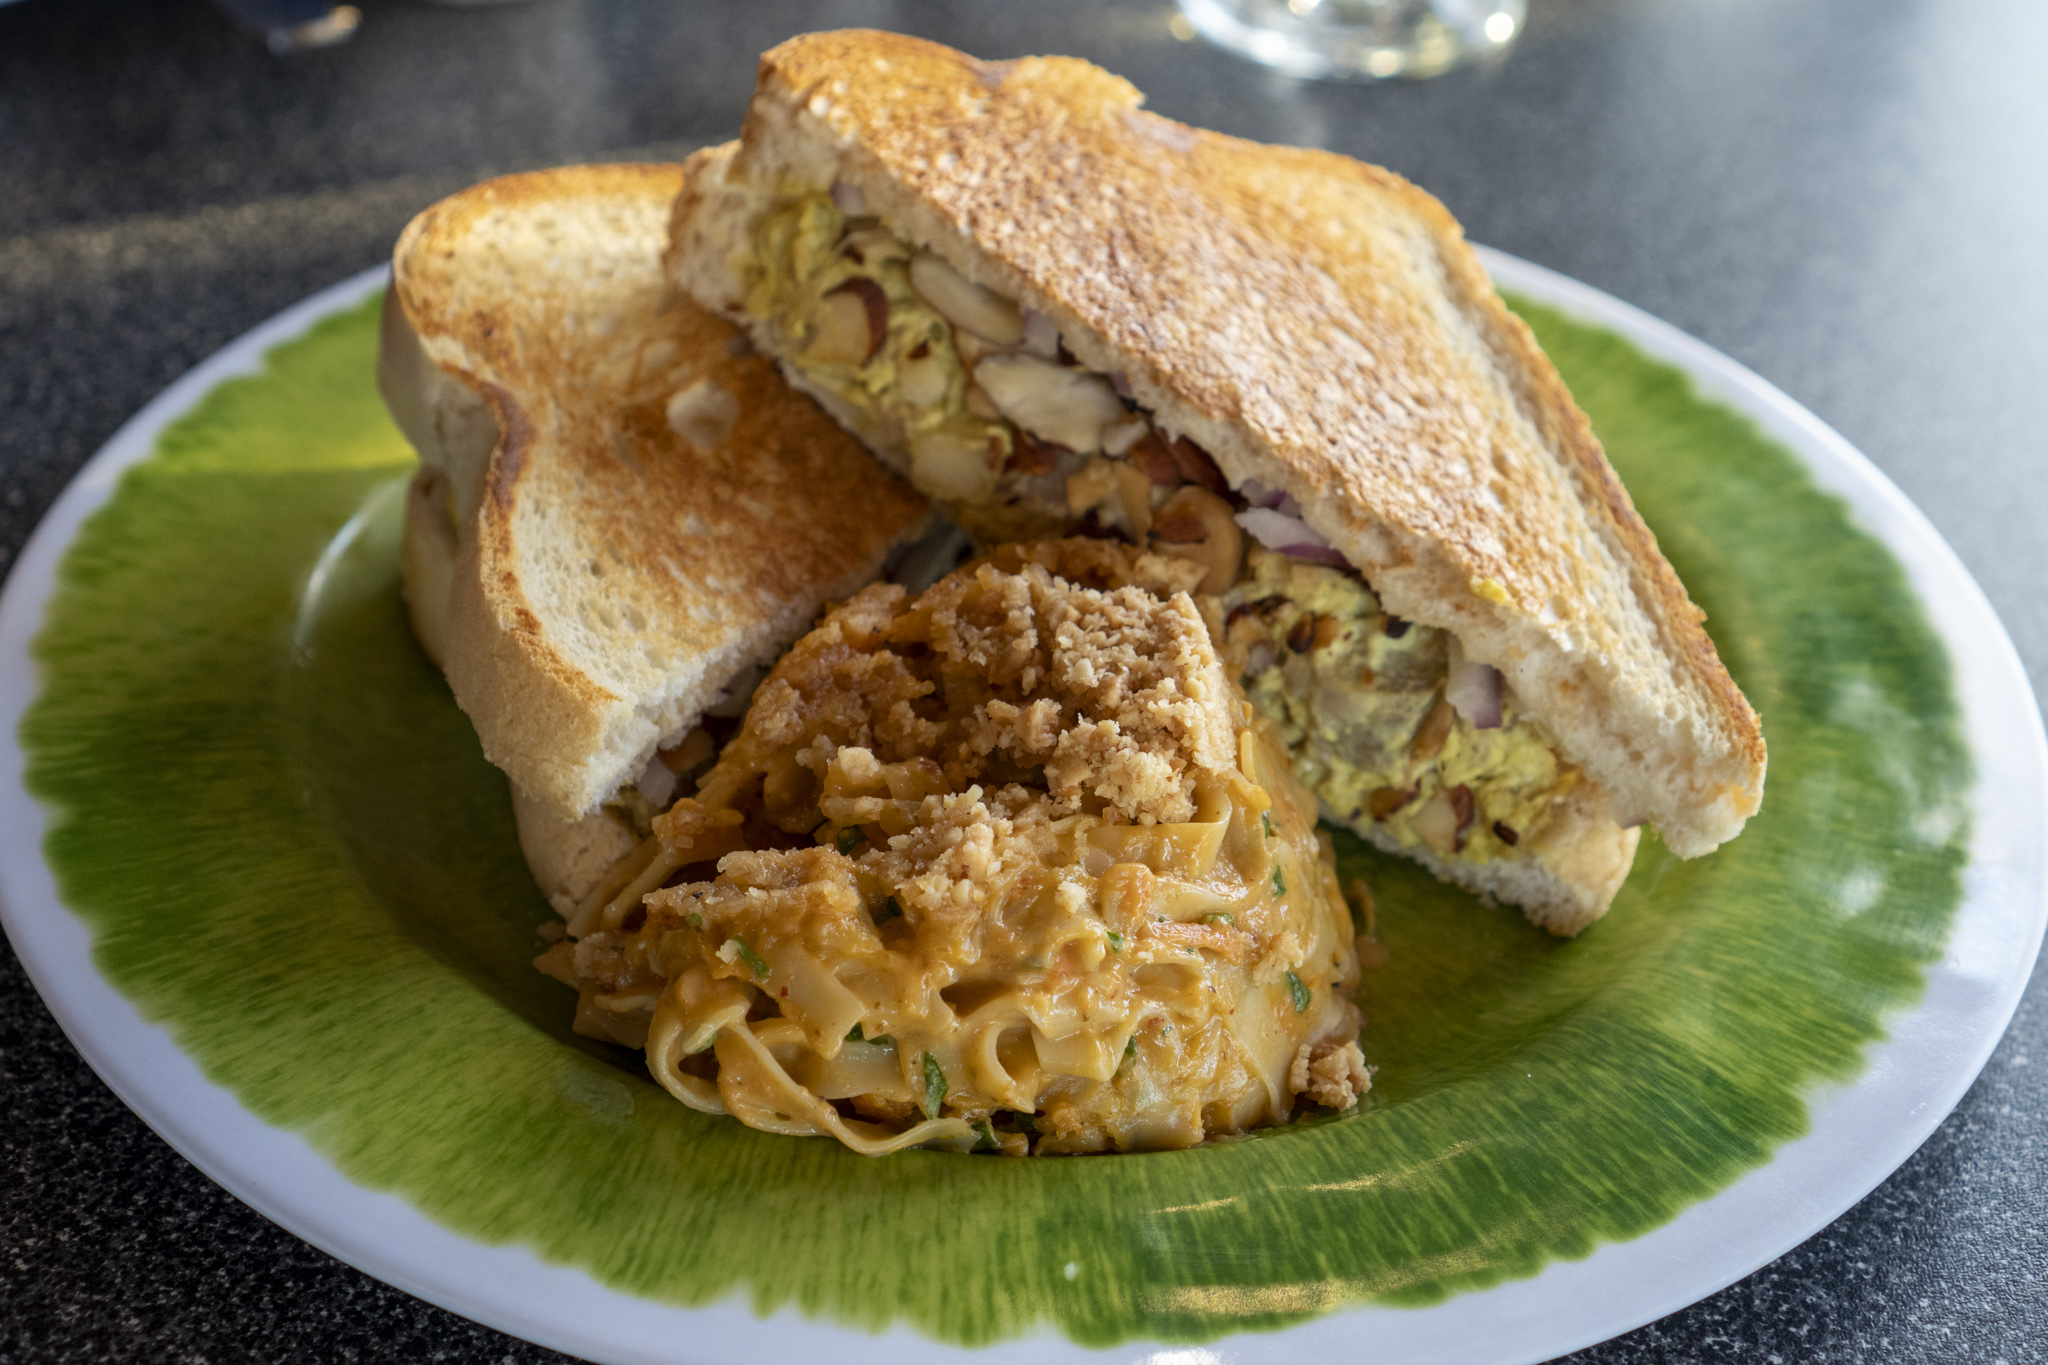 Yellow Curry Chicken Salad Sandwich and Noodles with Peanut Sauce